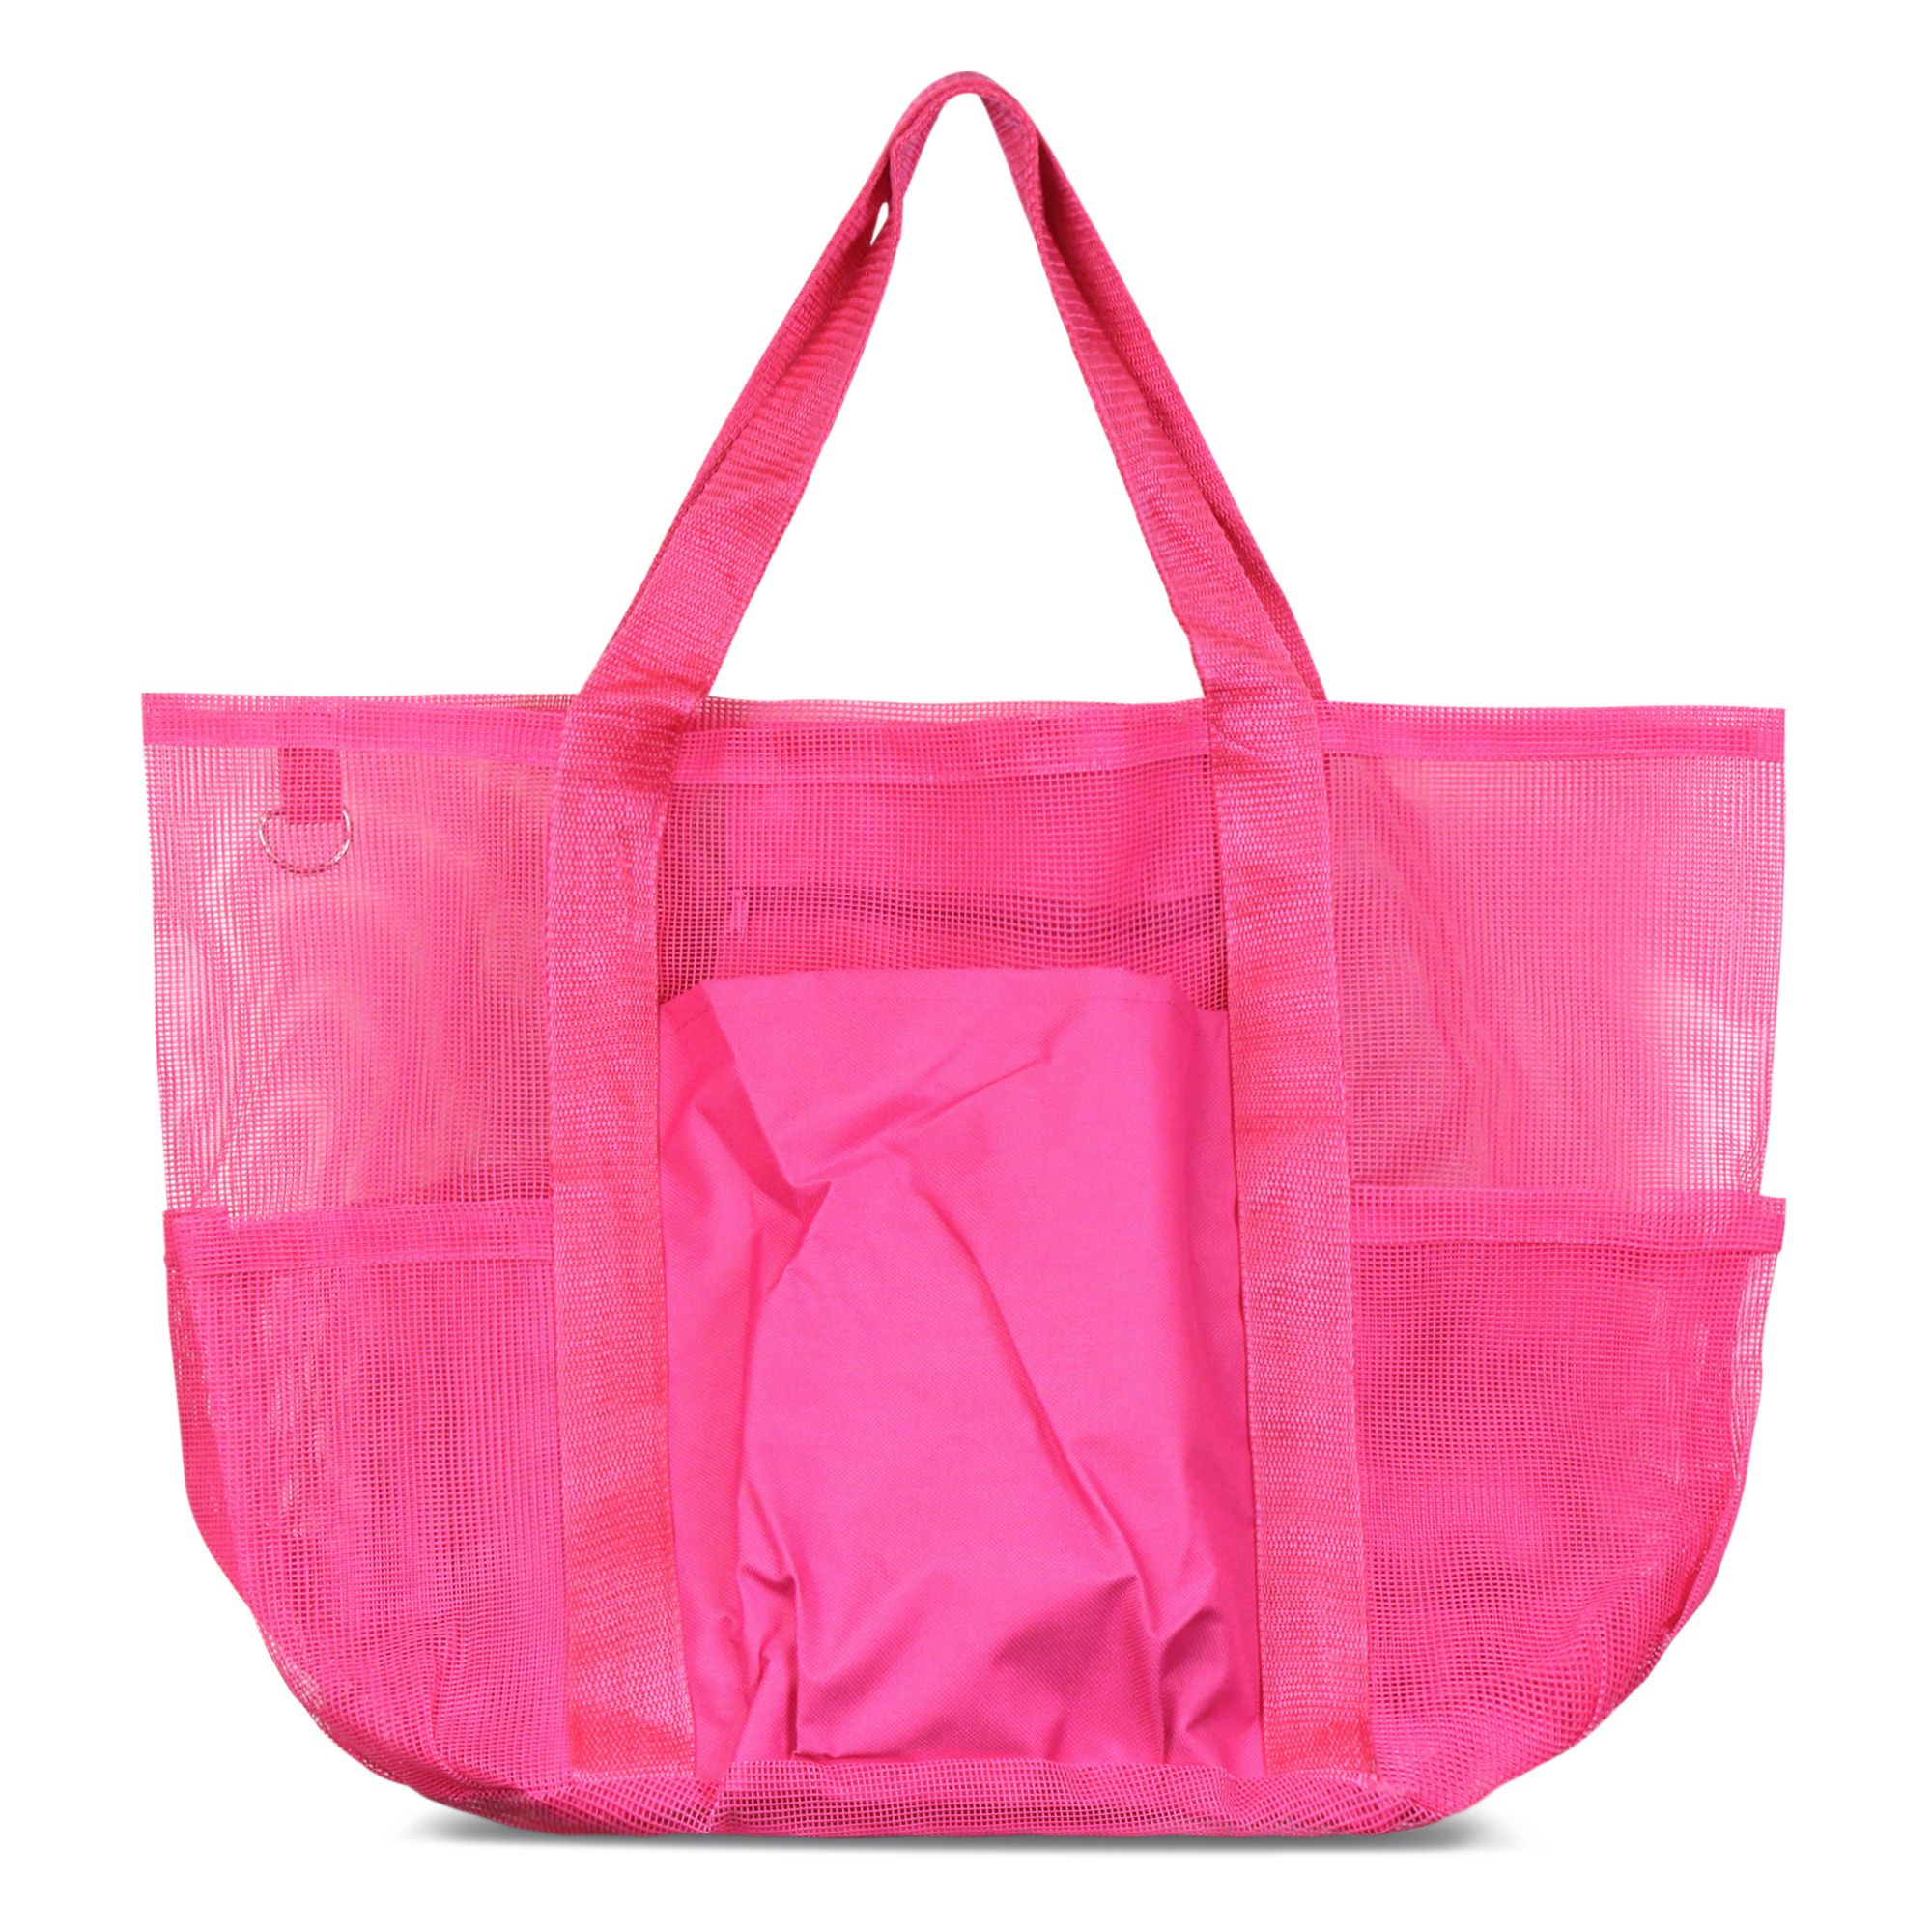 Zodaca Women All Purpose Mesh See Through Tote Carry Bag Handbag for Beach Laundry Grocery Shopping - Pink